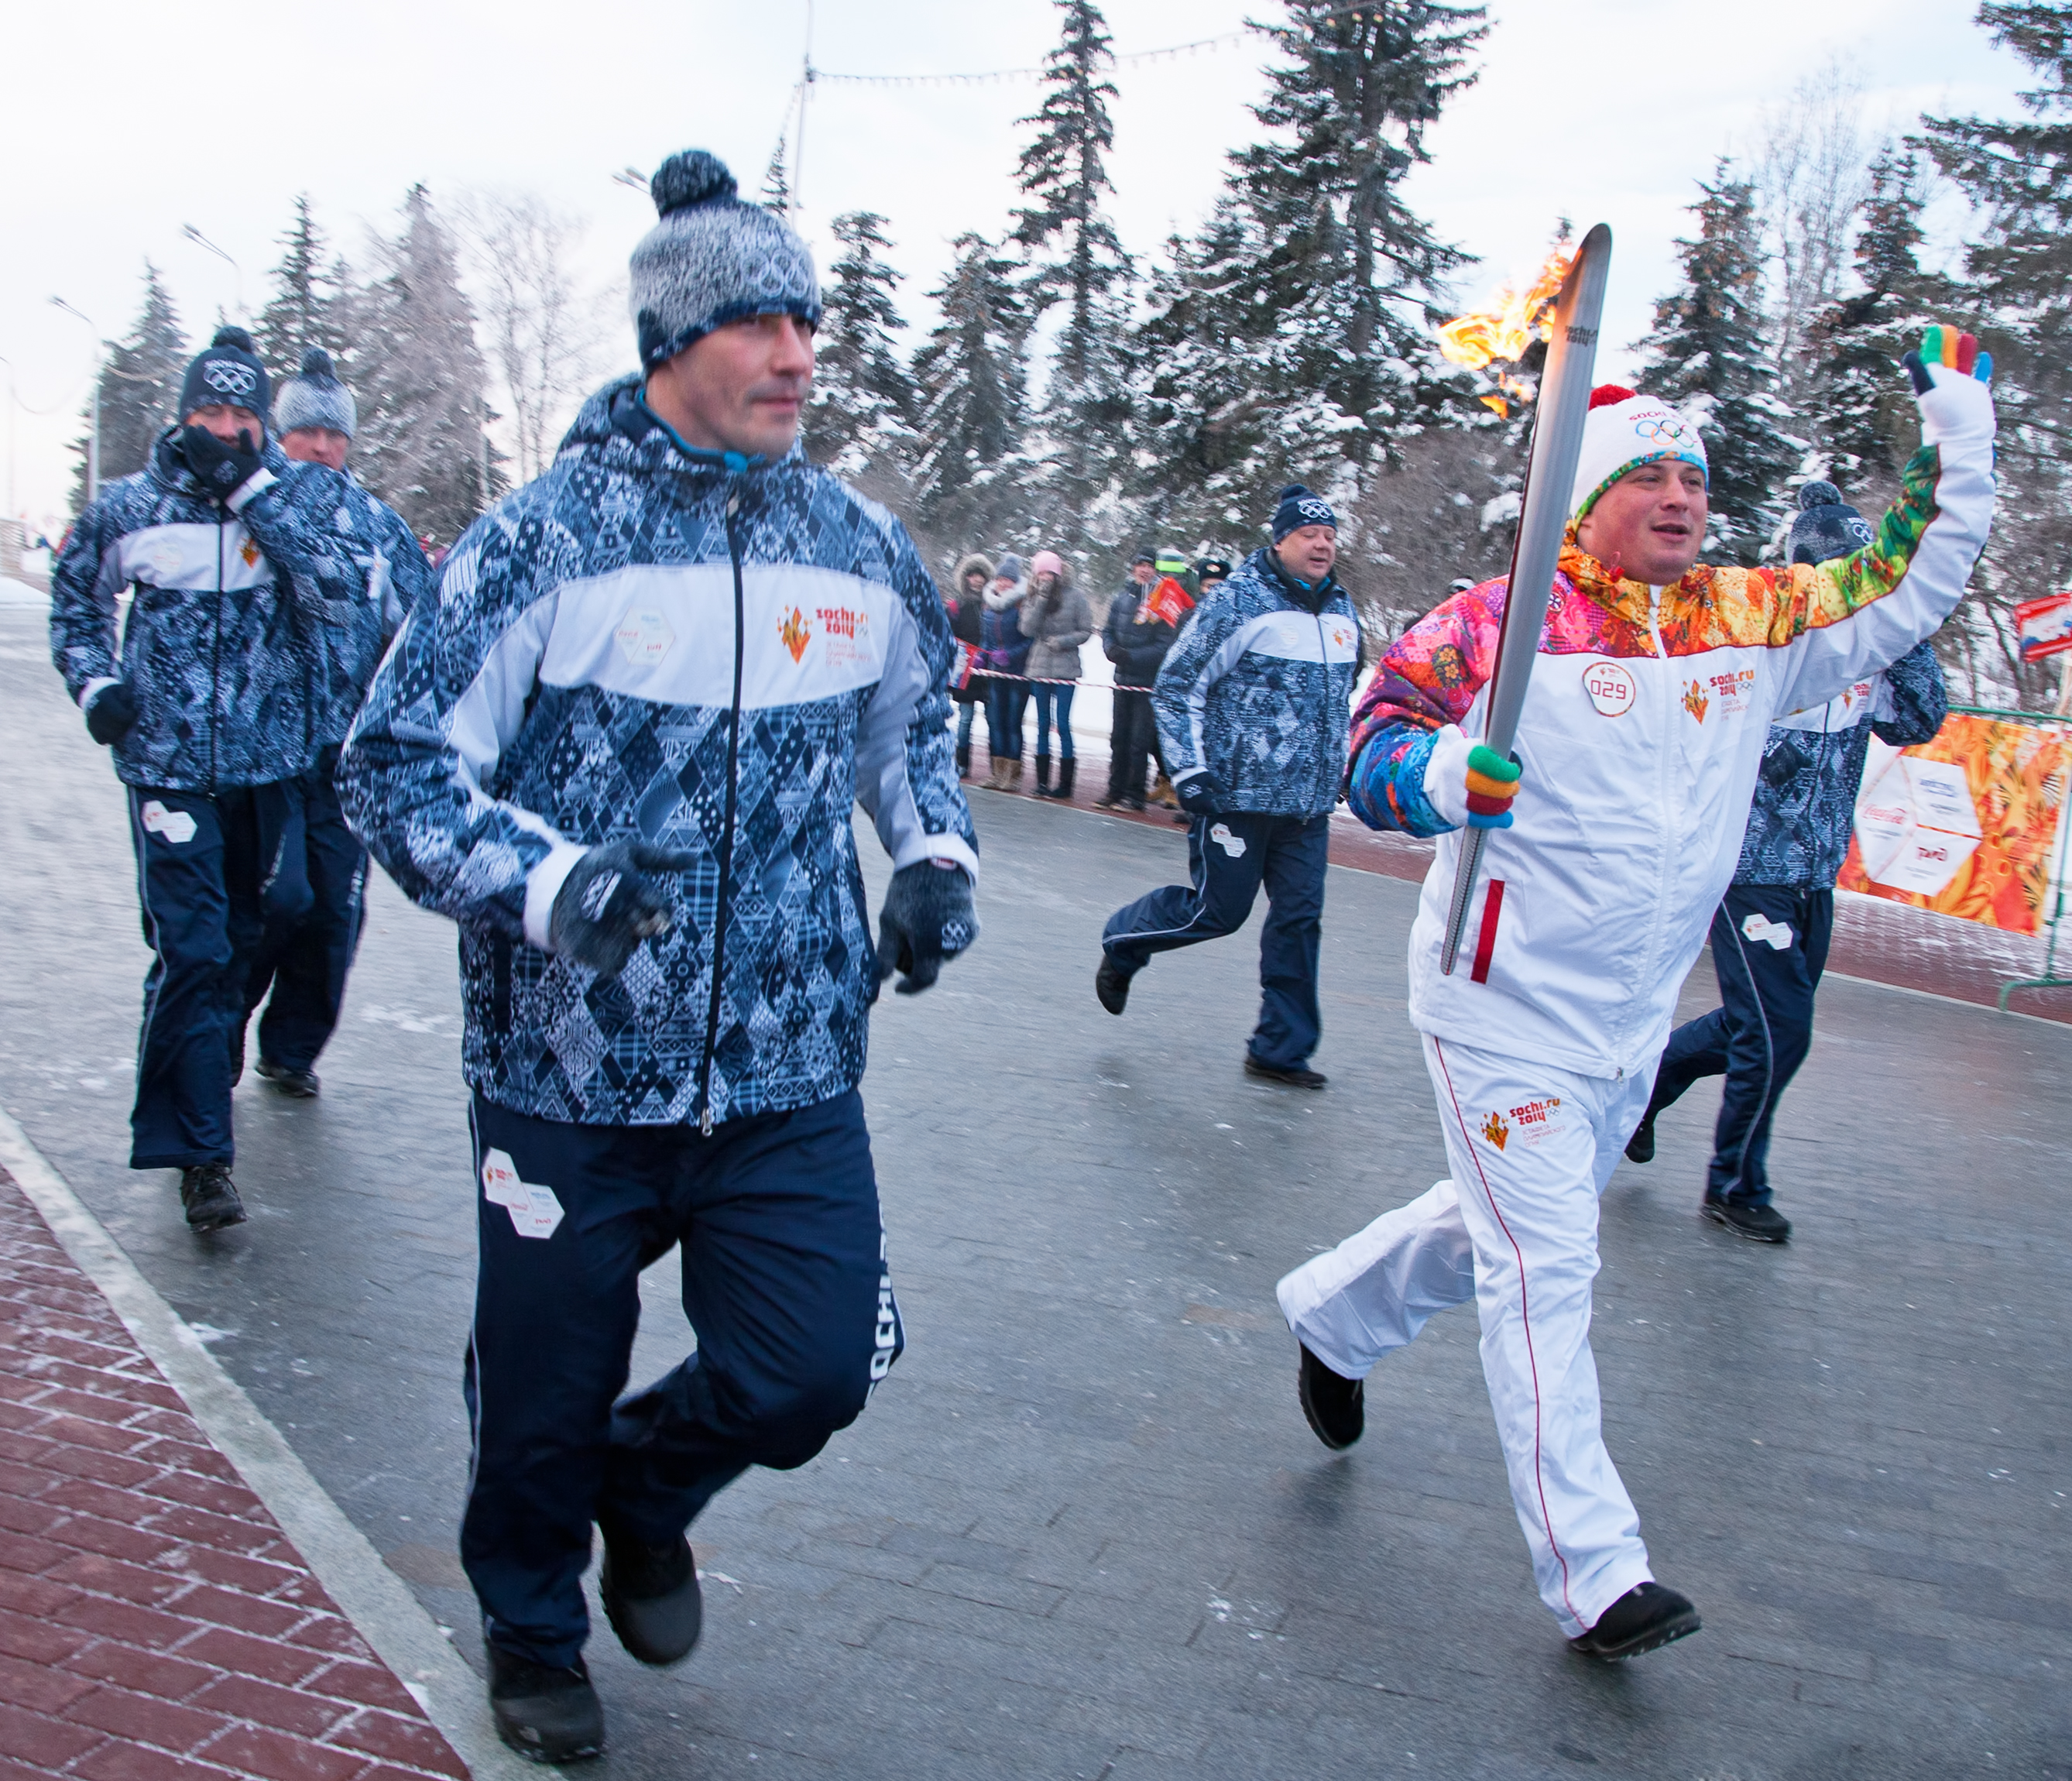 Olympic flame photo